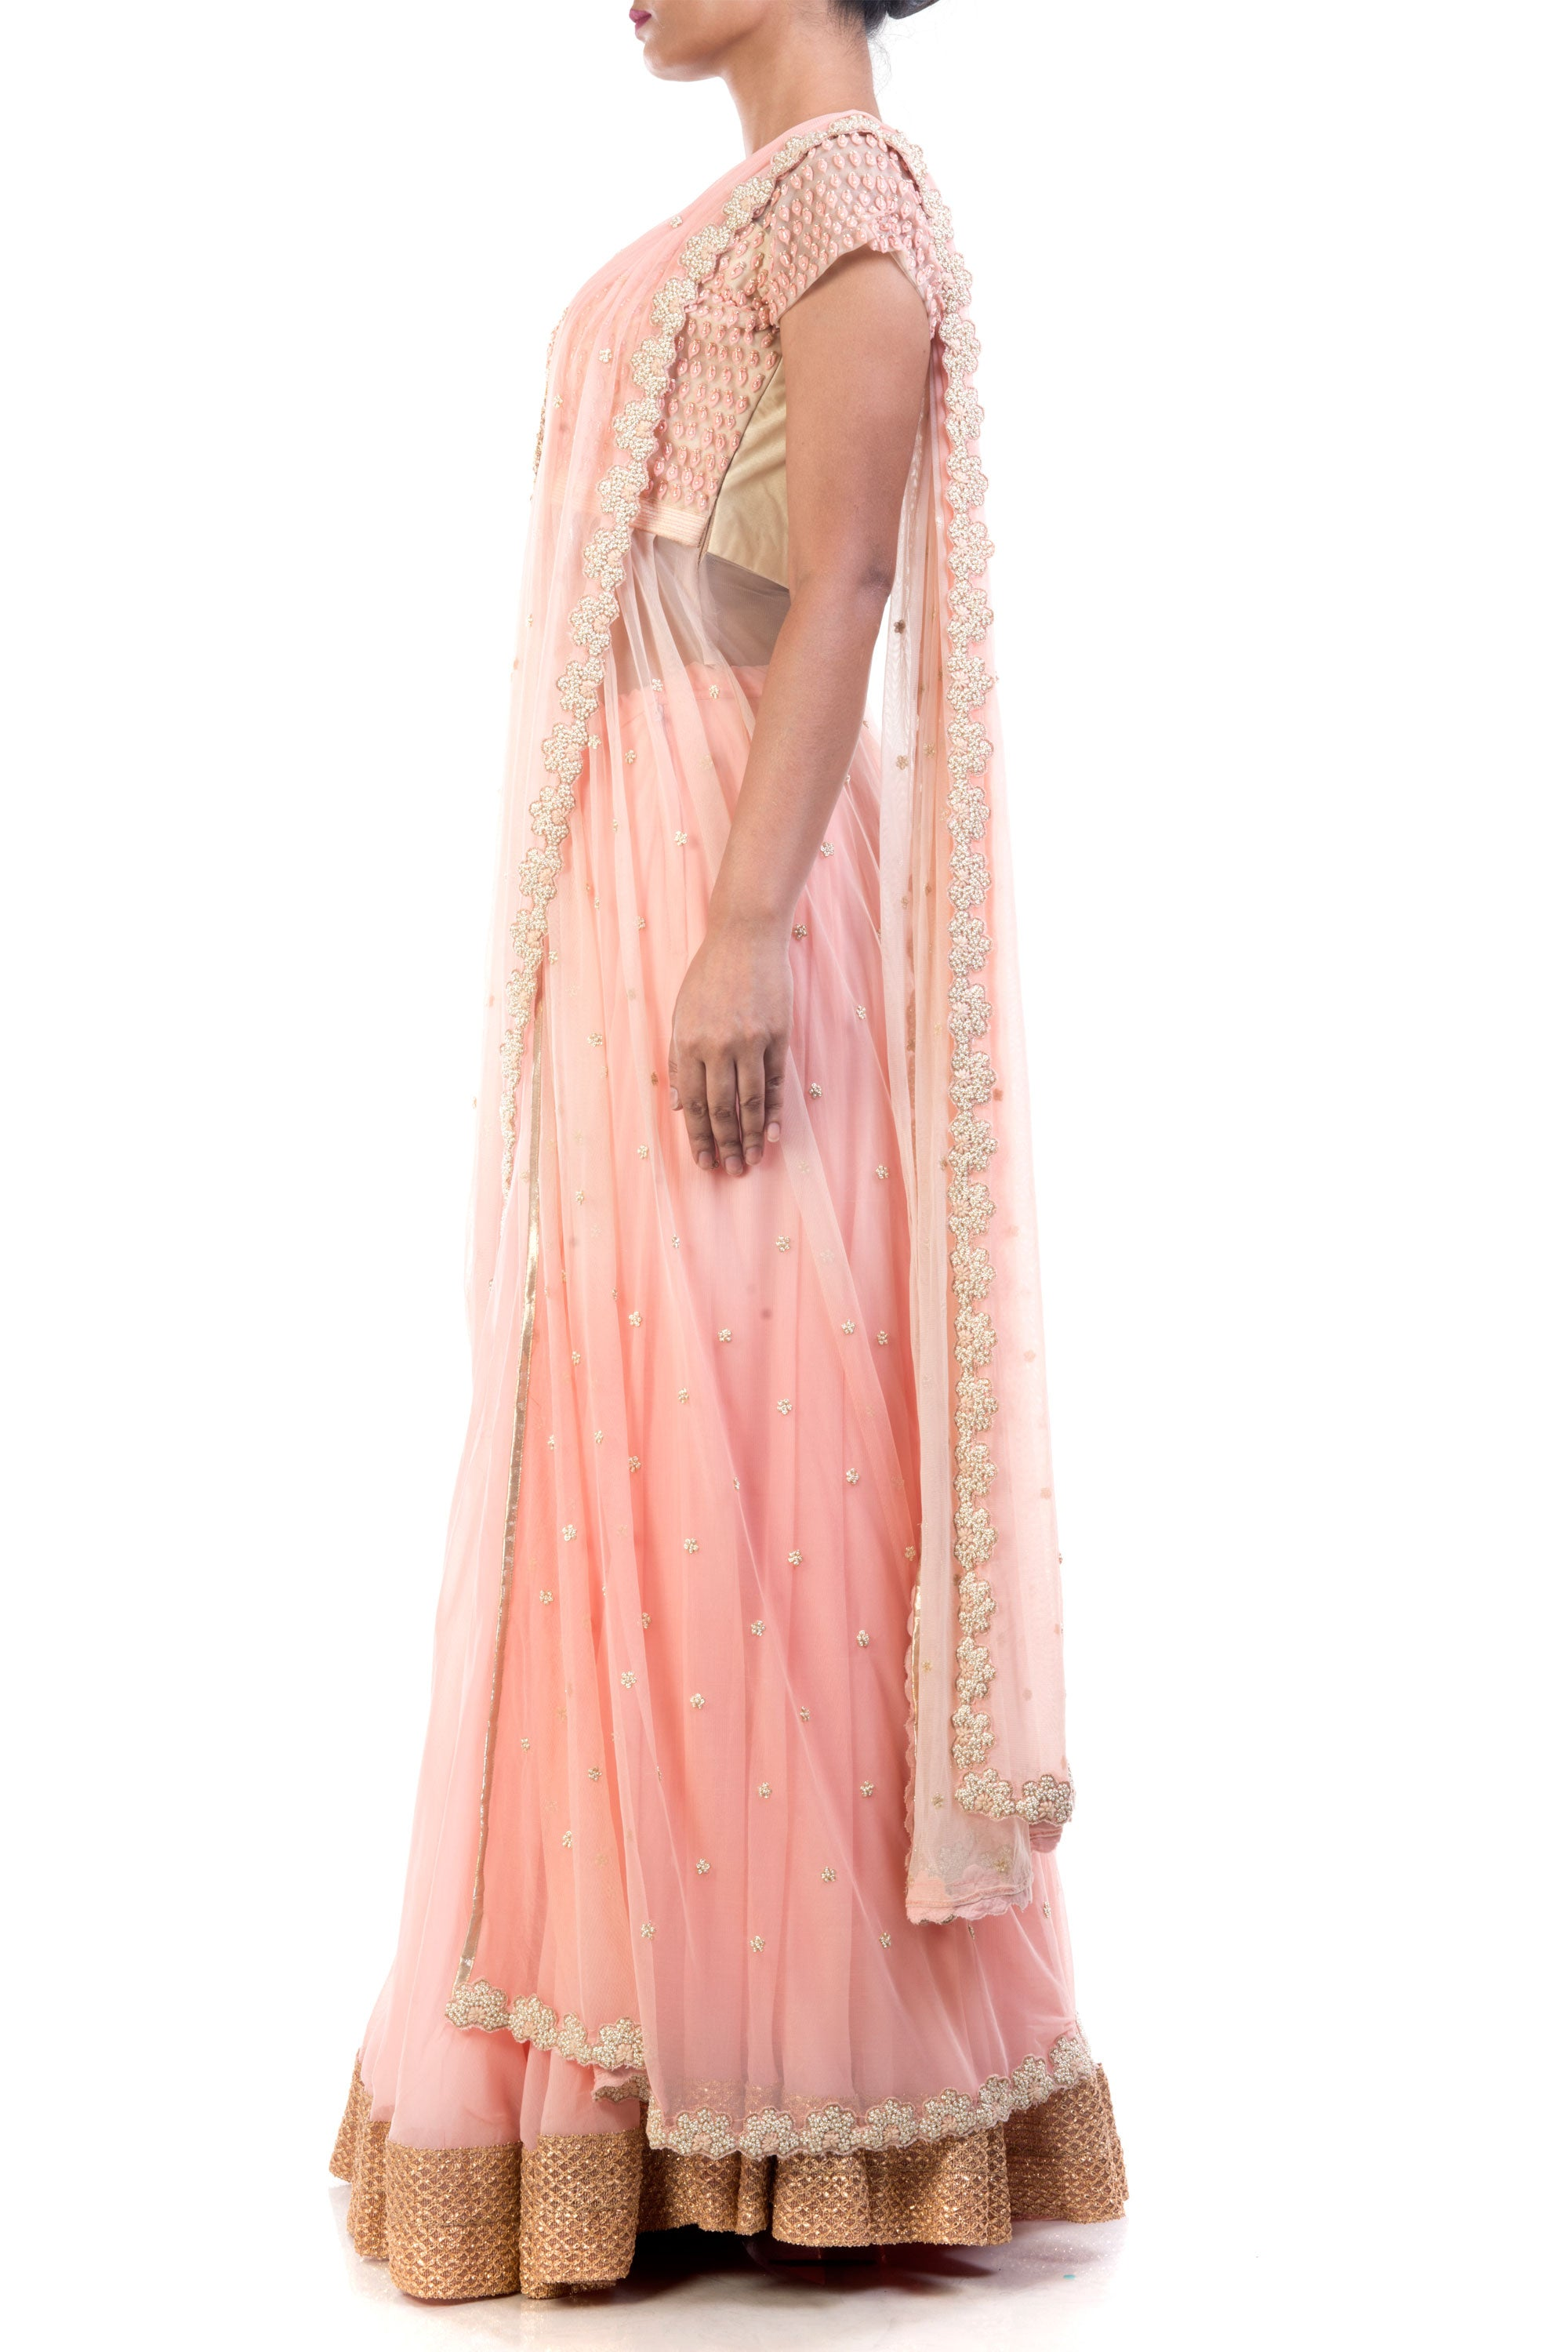 Bisque Lehenga With Attached Dupatta Side